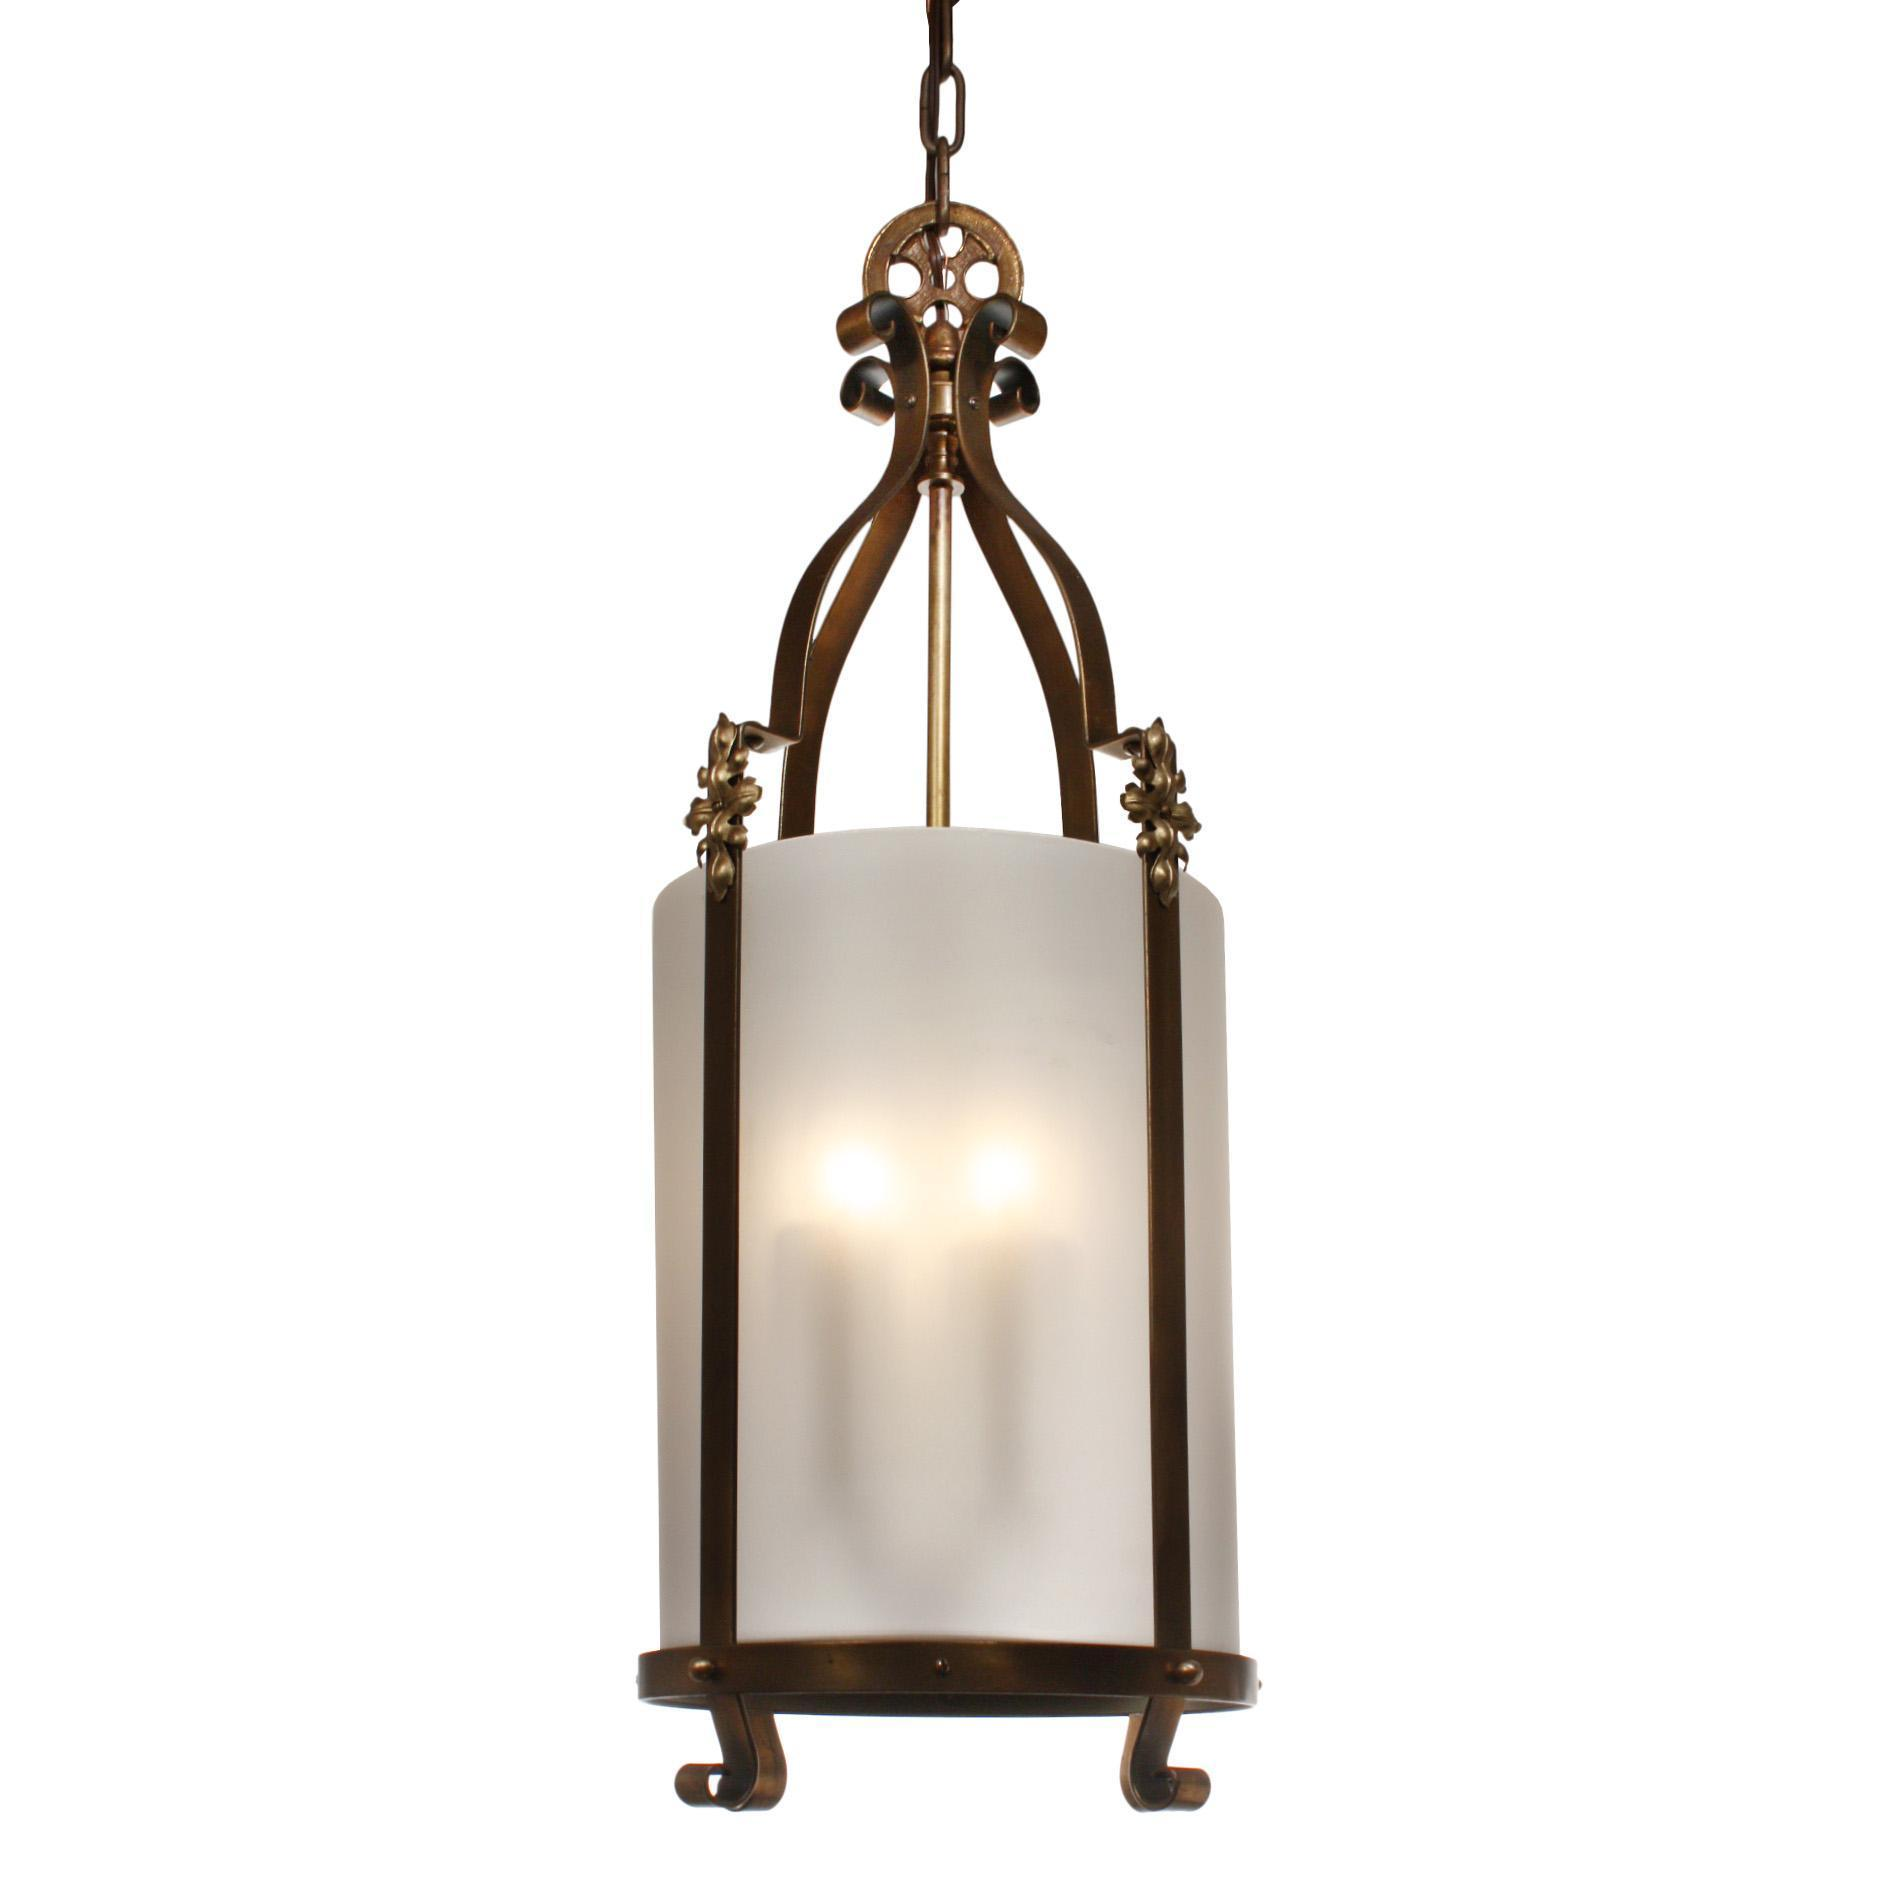 Substantial Antique Lantern with Frosted Shade, Early 1900's